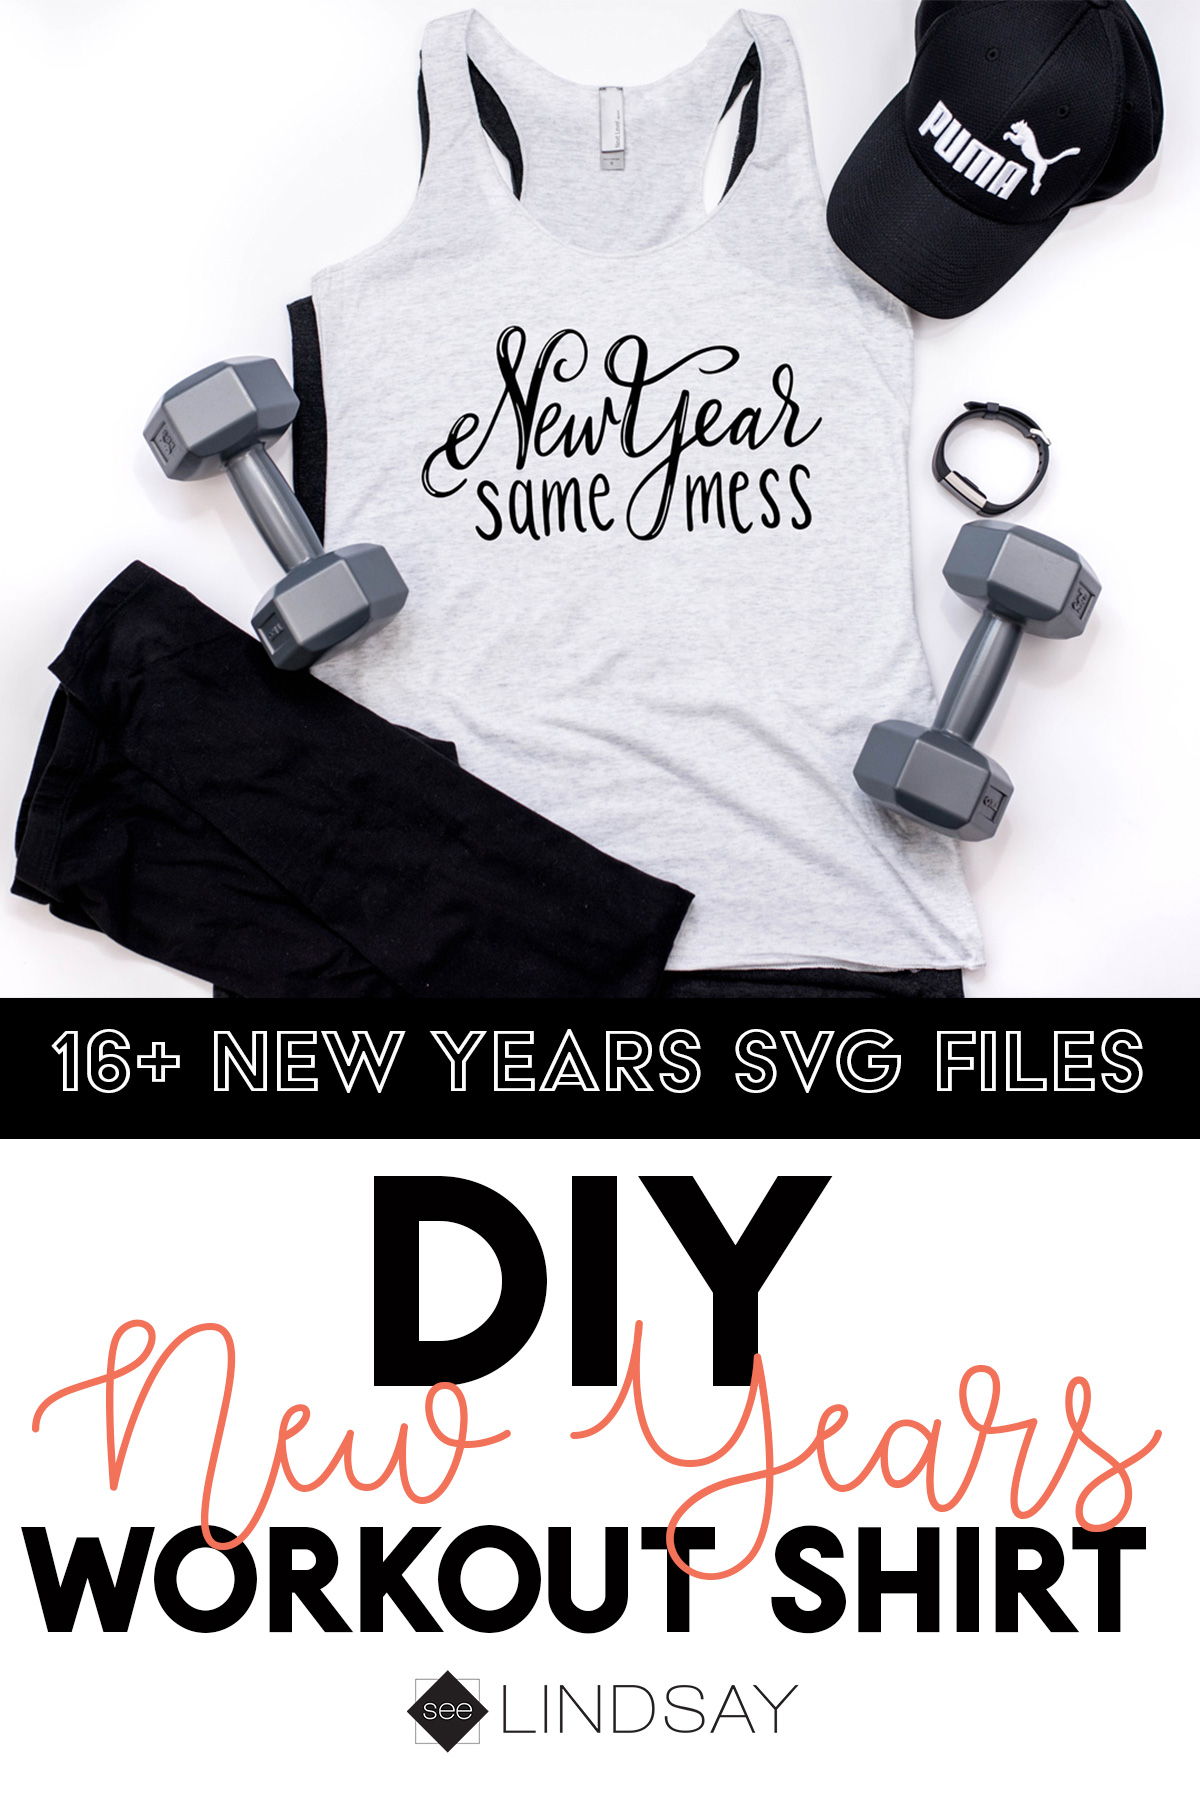 diy workout shirt new year same mess